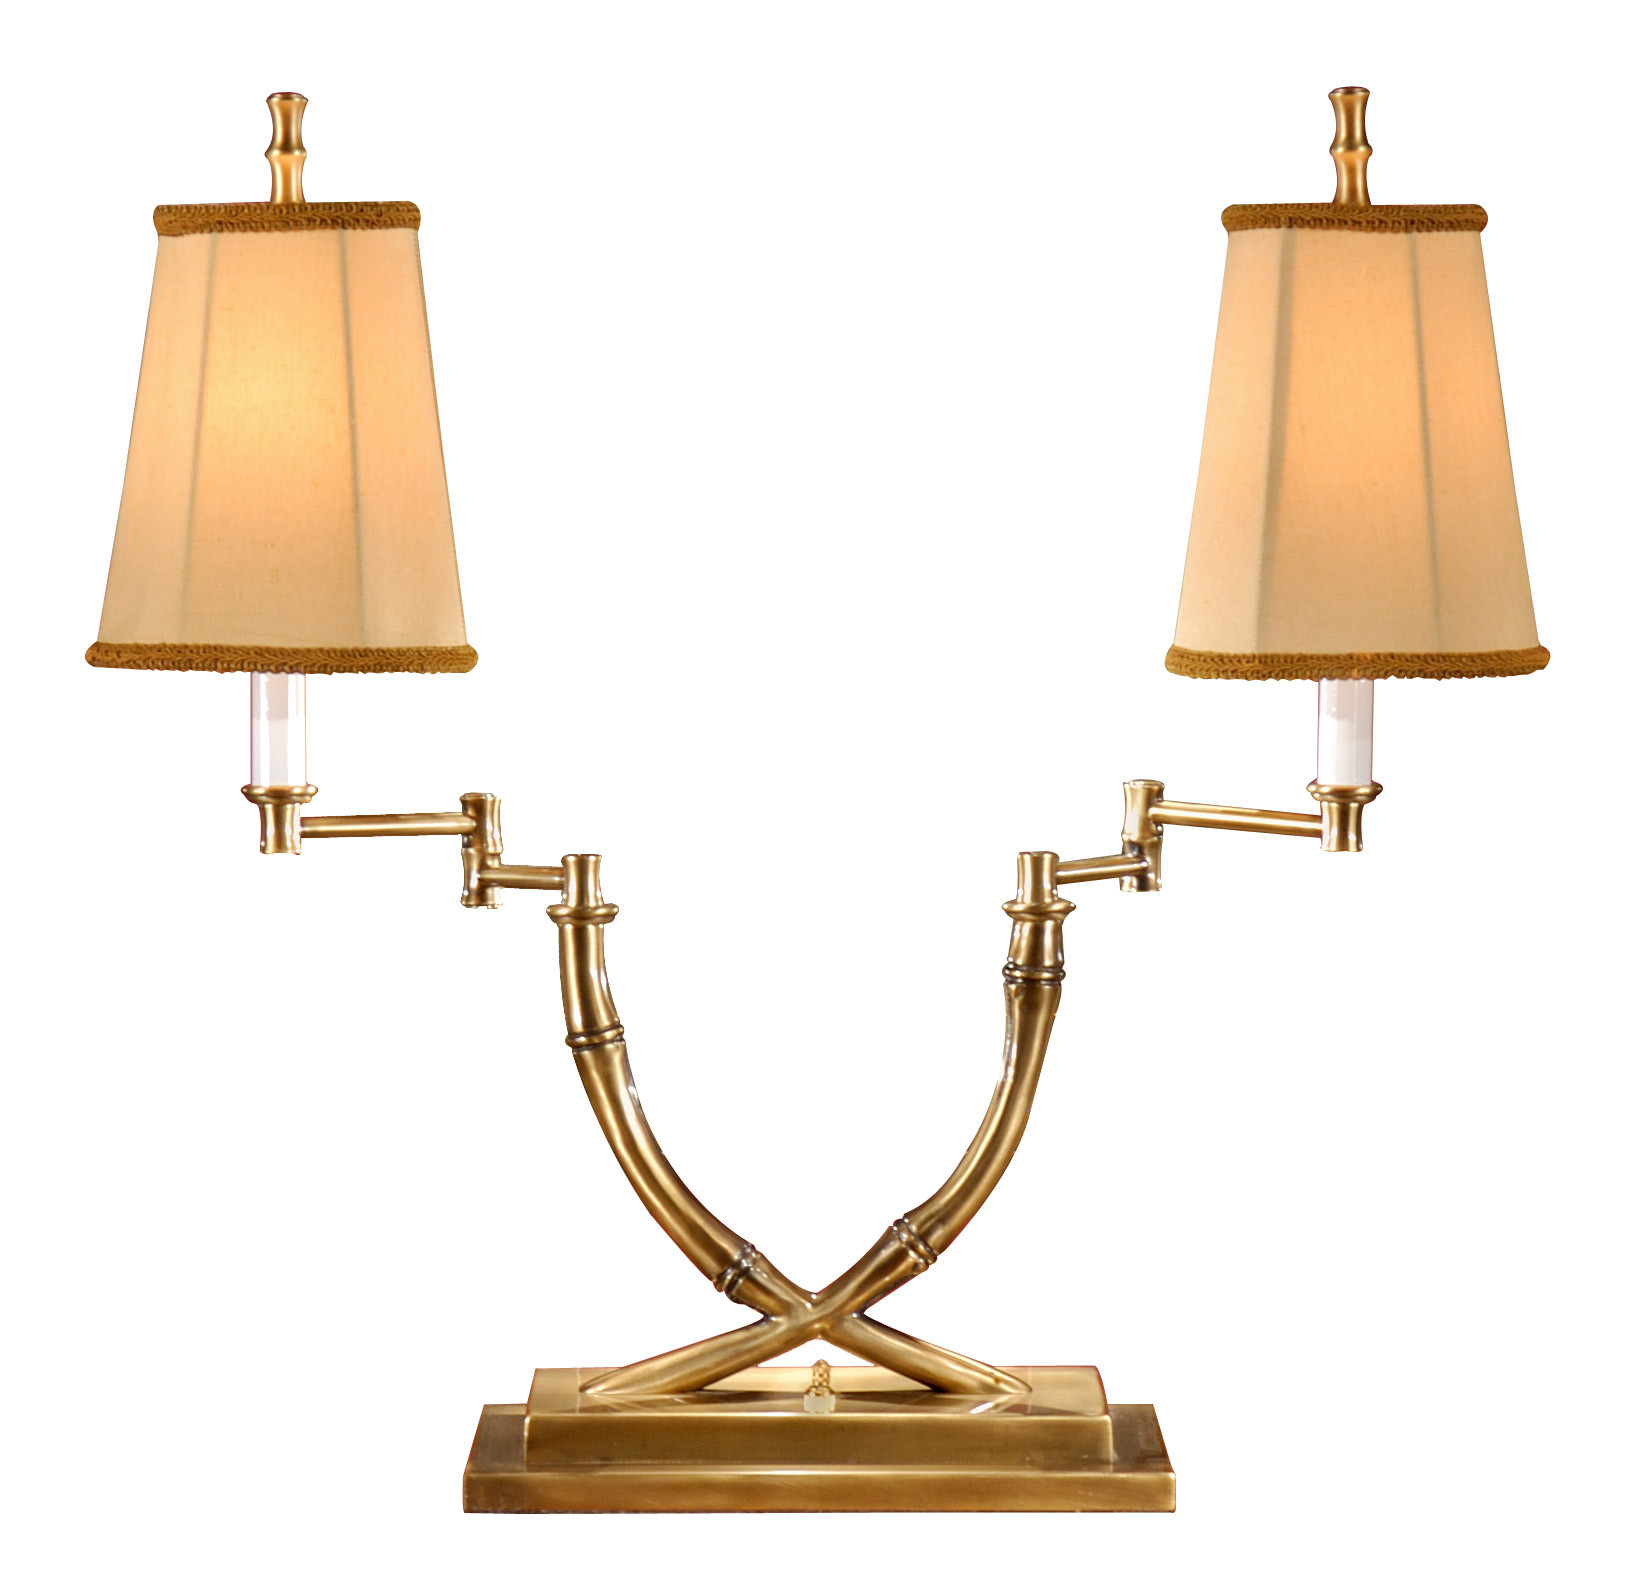 Best ideas about Swing Arm Desk Lamp . Save or Pin Crossed Bamboo Double Swing Arm Desk Lamp Lights and Lamps Now.